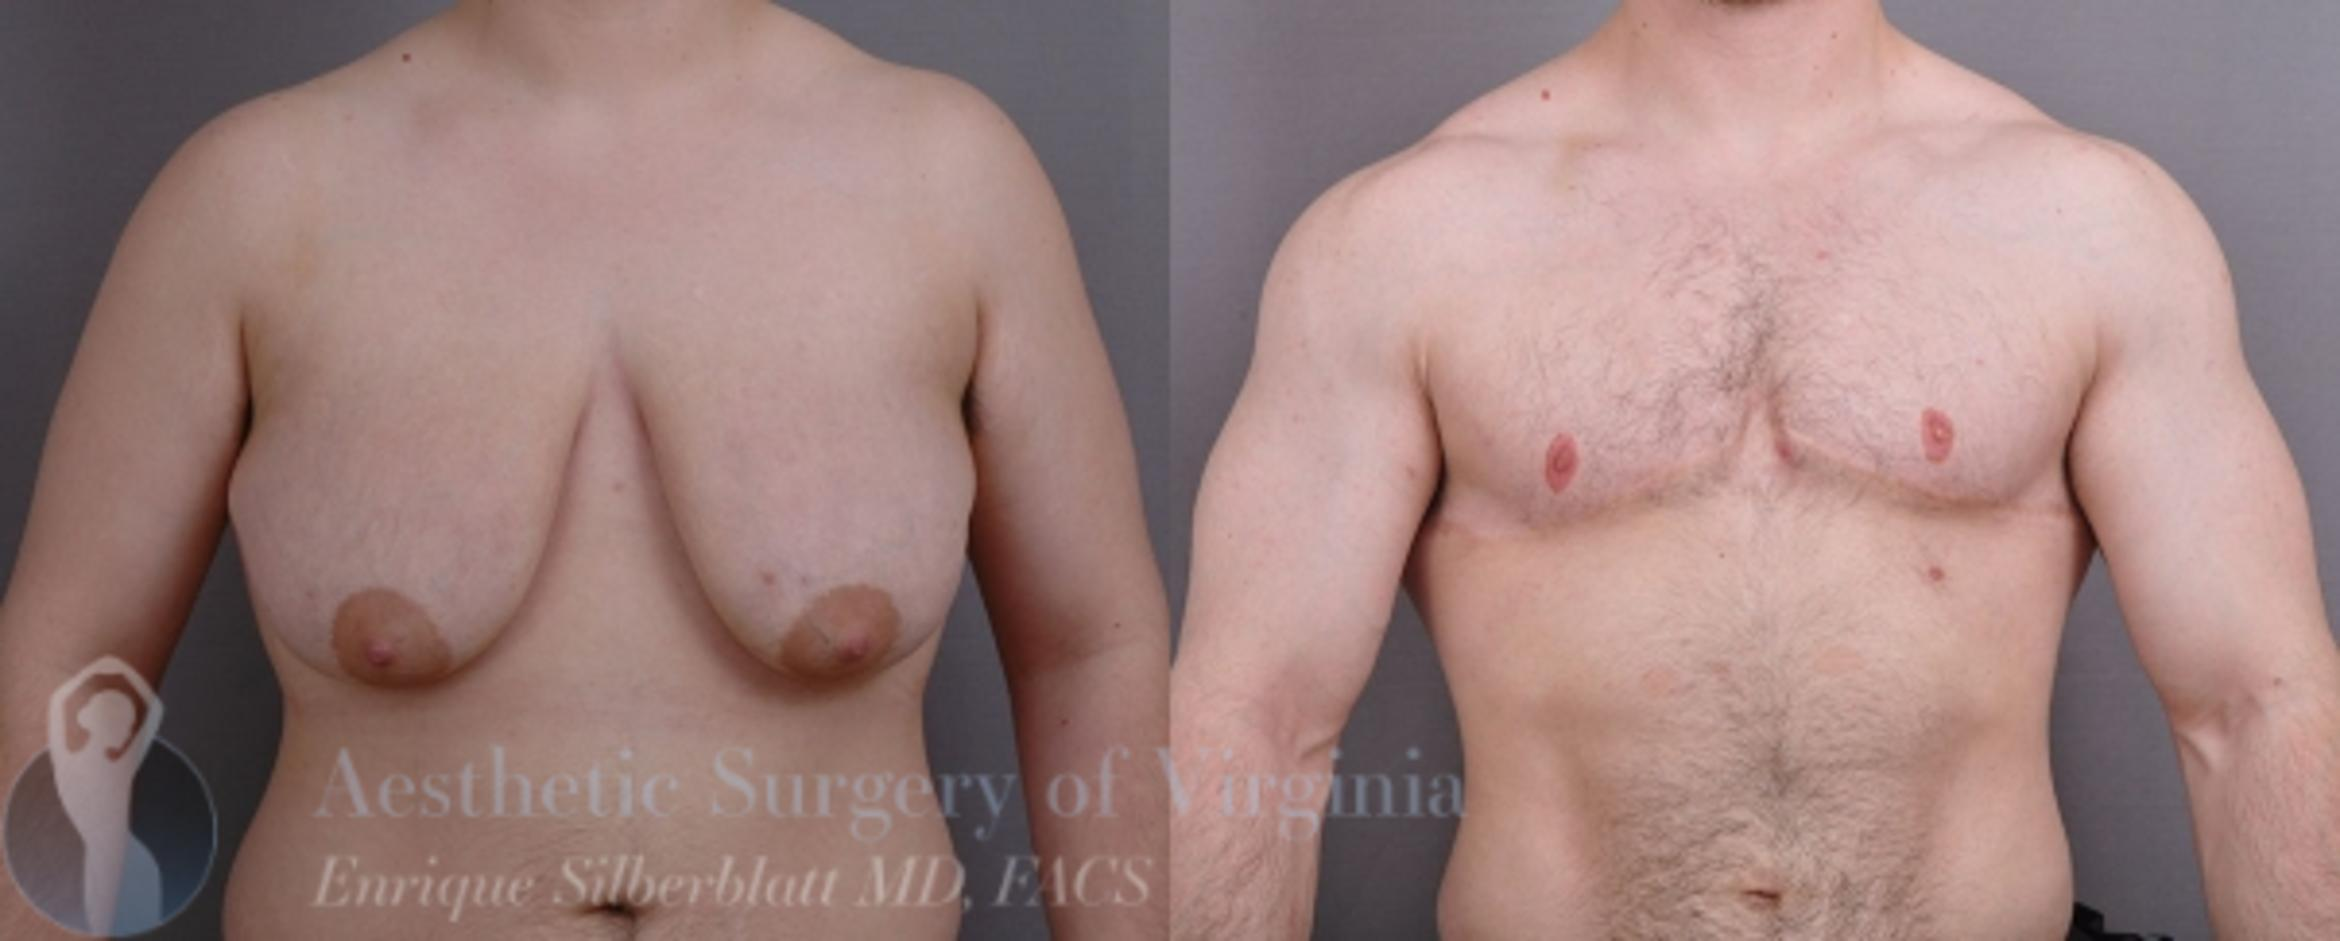 Female to Male Breast Surgery Case 57 Before & After View #1 | Roanoke, VA | Aesthetic Surgery of Virginia: Enrique Silberblatt, MD